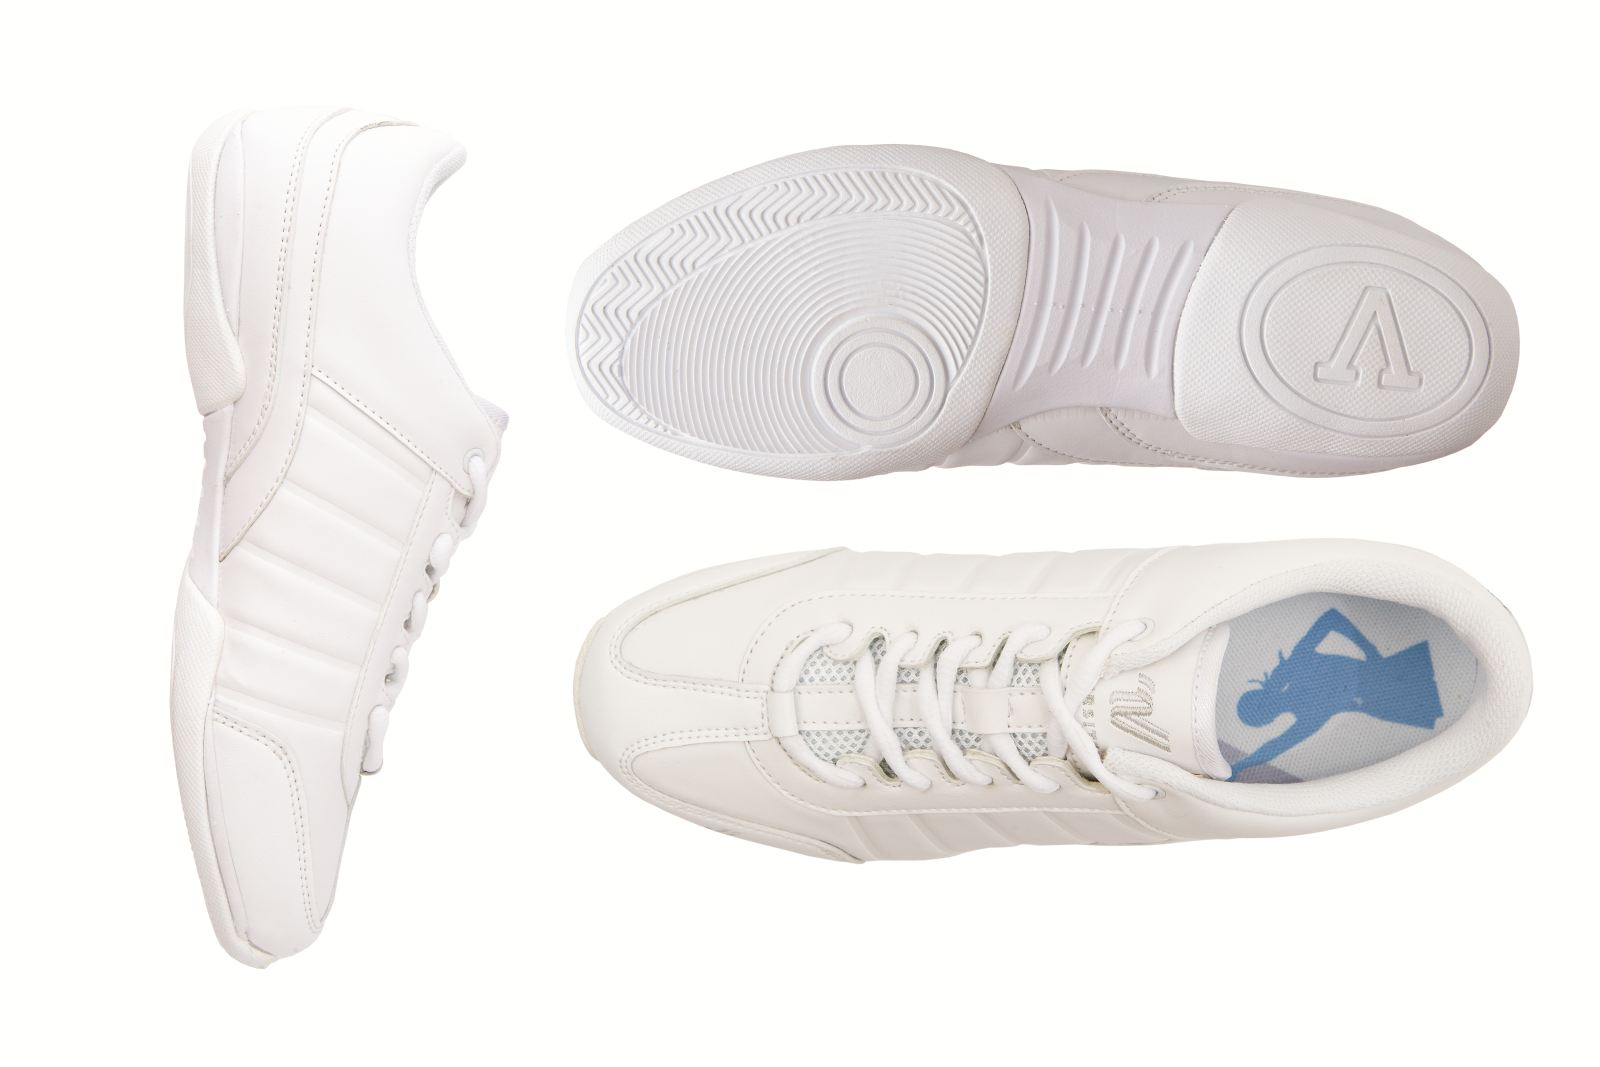 CheerandPom Blog: Our Projected Top 5 Cheer Shoes for 2012